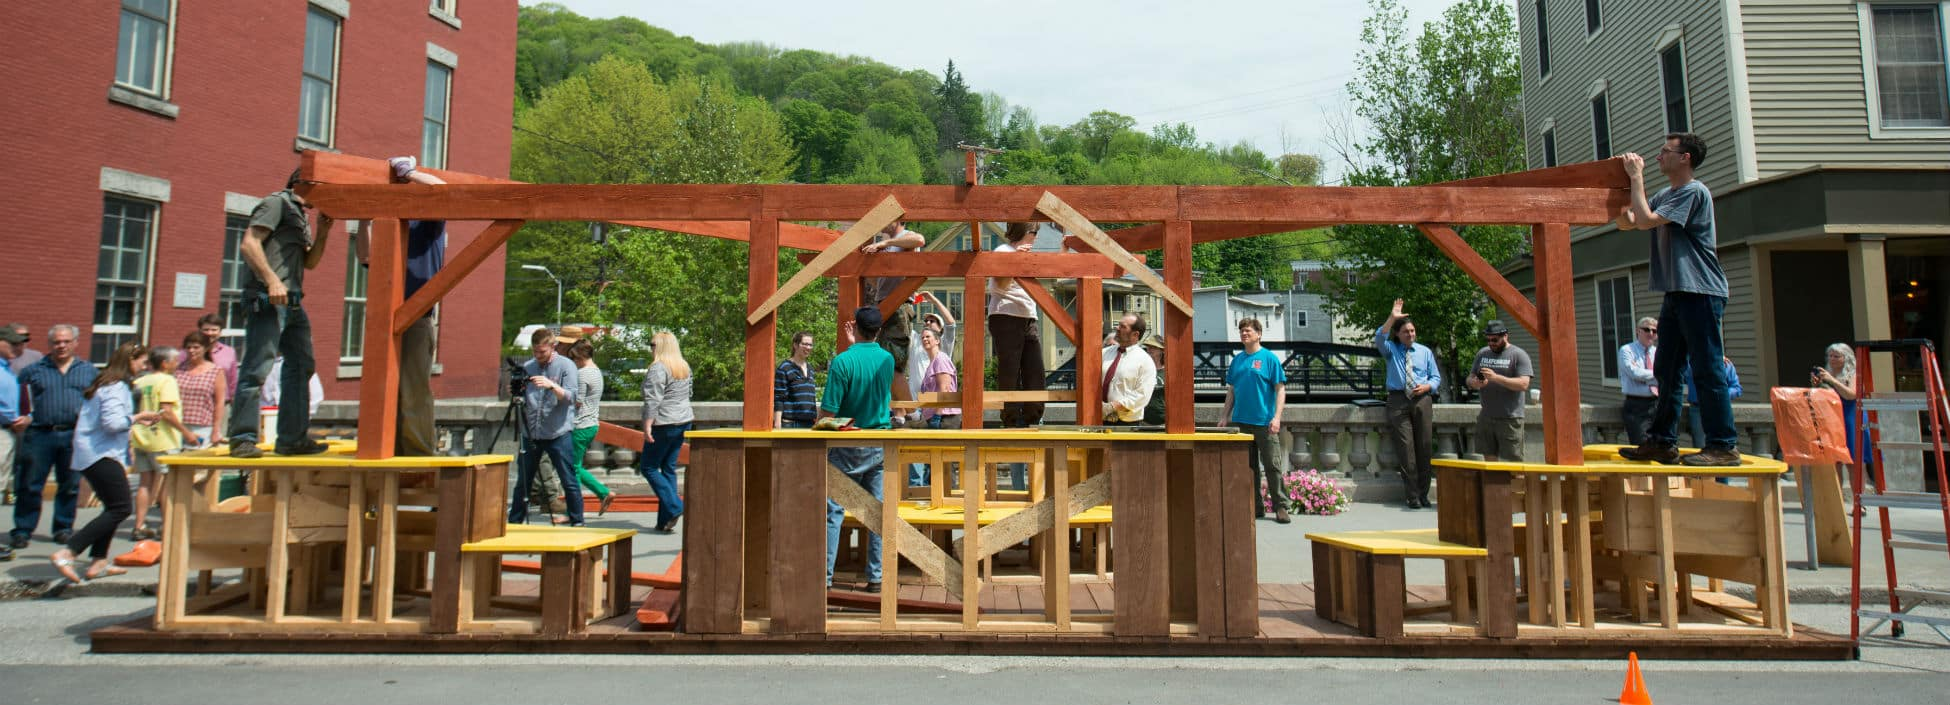 Building parklet in Montpelier, teamwork